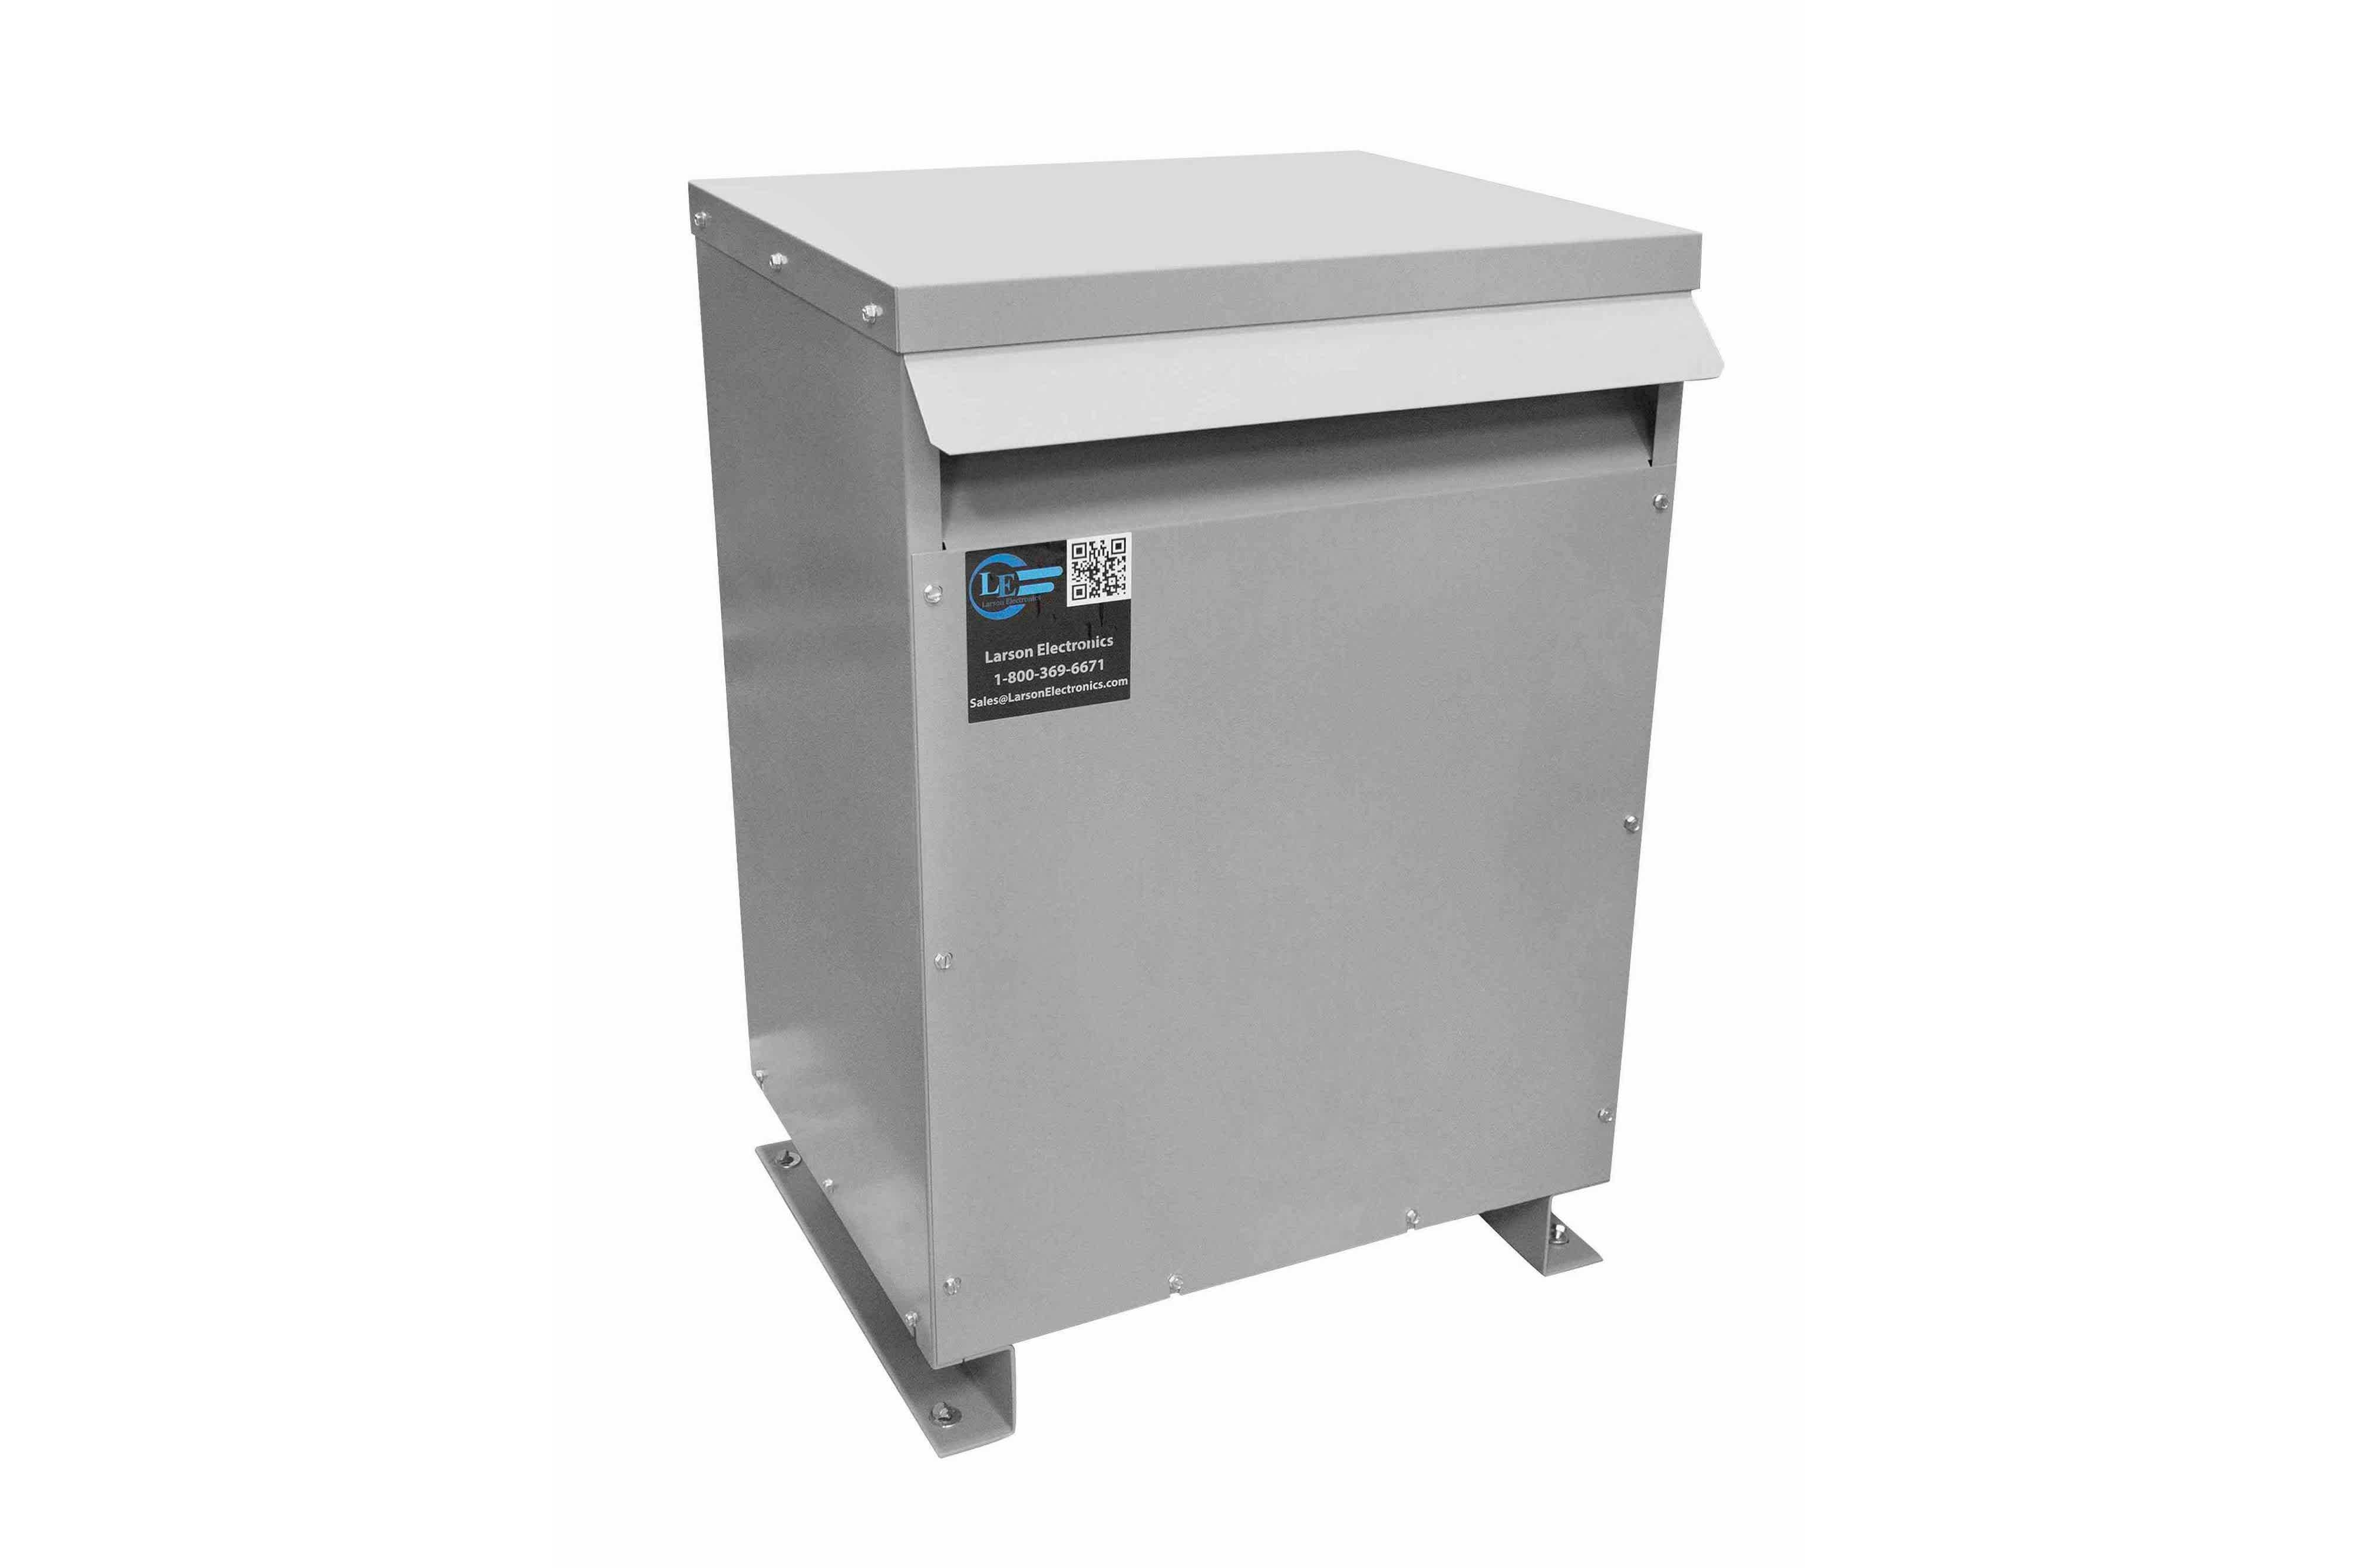 13 kVA 3PH Isolation Transformer, 208V Wye Primary, 415Y/240 Wye-N Secondary, N3R, Ventilated, 60 Hz